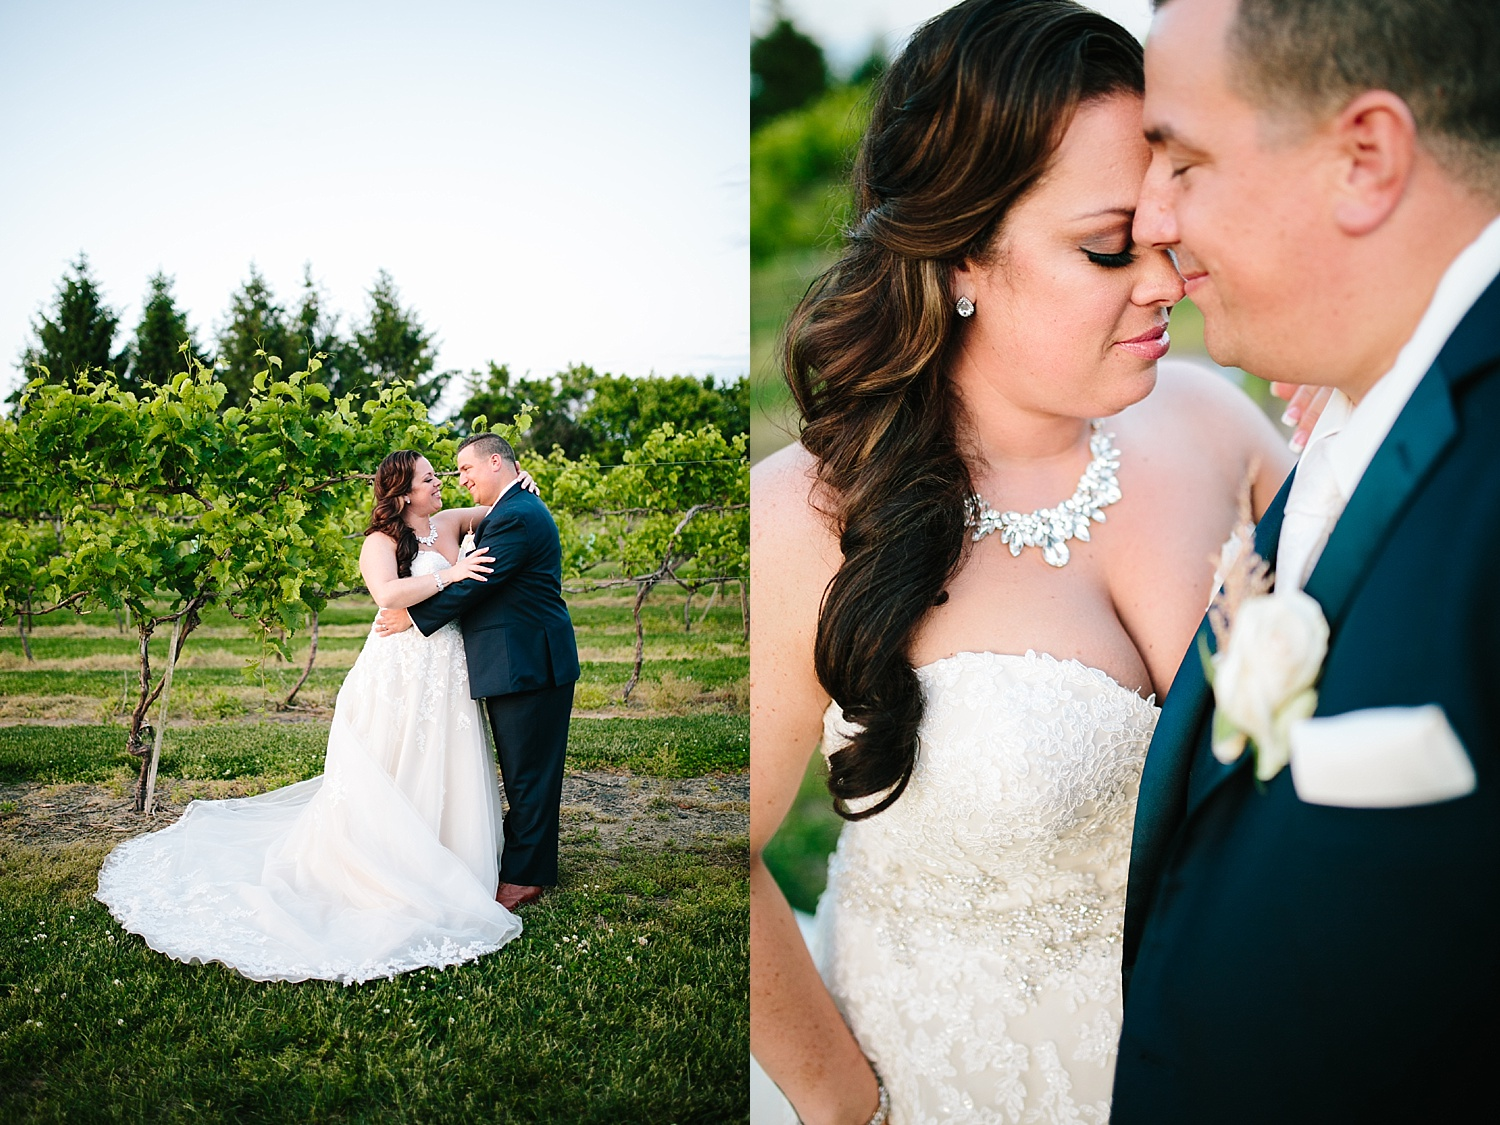 kellishawn_rosebankwinery_newtown_buckscounty_summer_wedding_image006.jpg